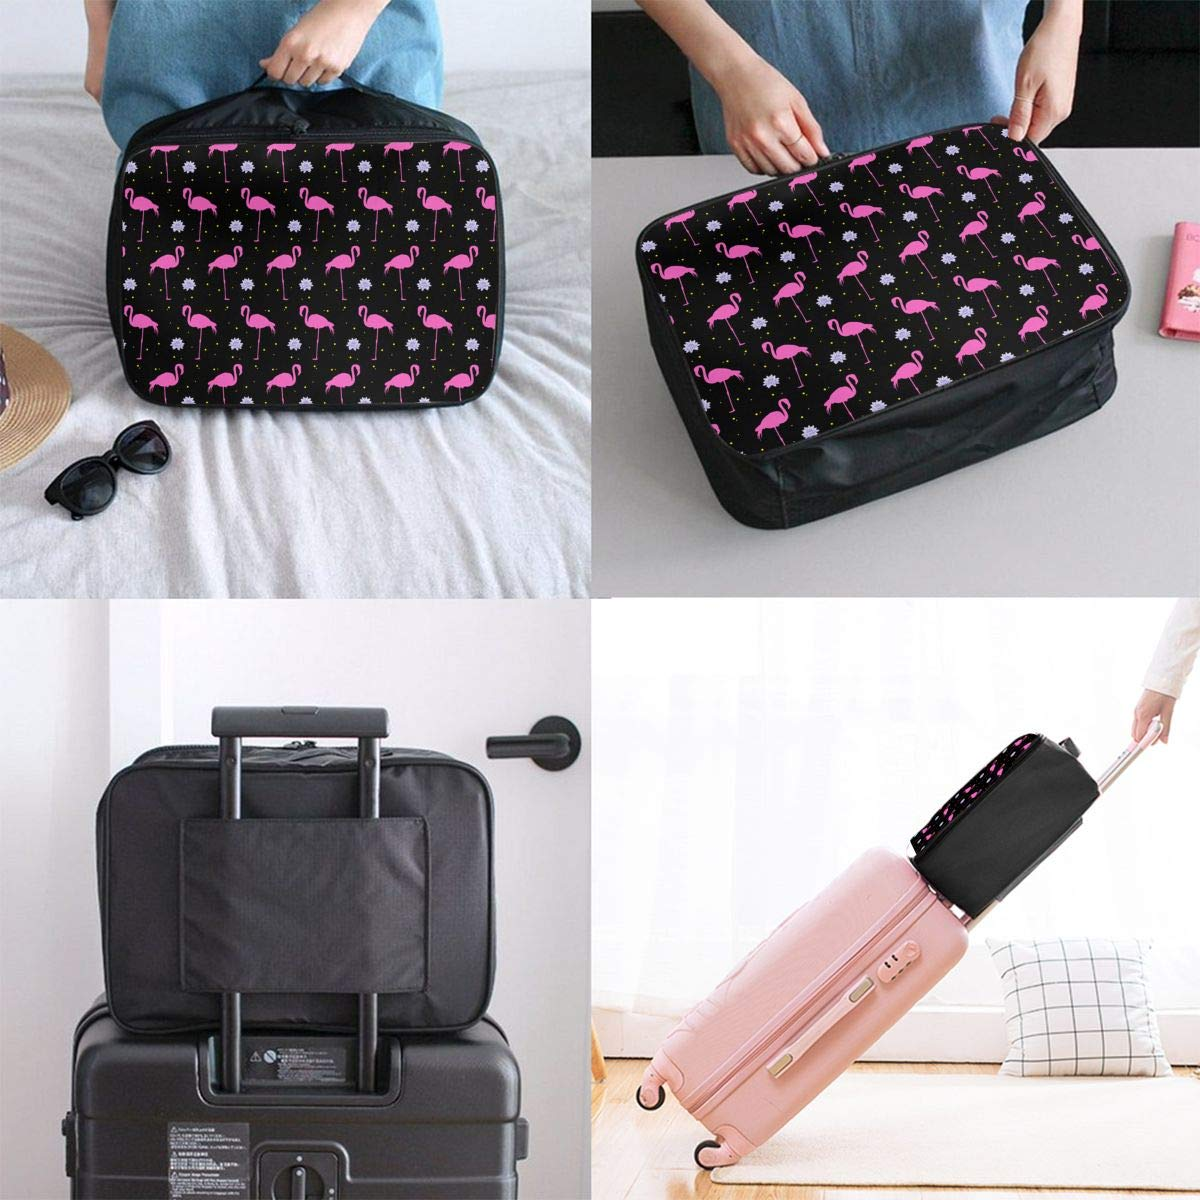 Holiday Gym Tote Luggage Bag Exotic Bird Pink Flamingos Travel Duffle Bag Large Lightweight Weekender Bag Nylon Toiletry Bag Waterproof Luggage Duffel Bag For Sports